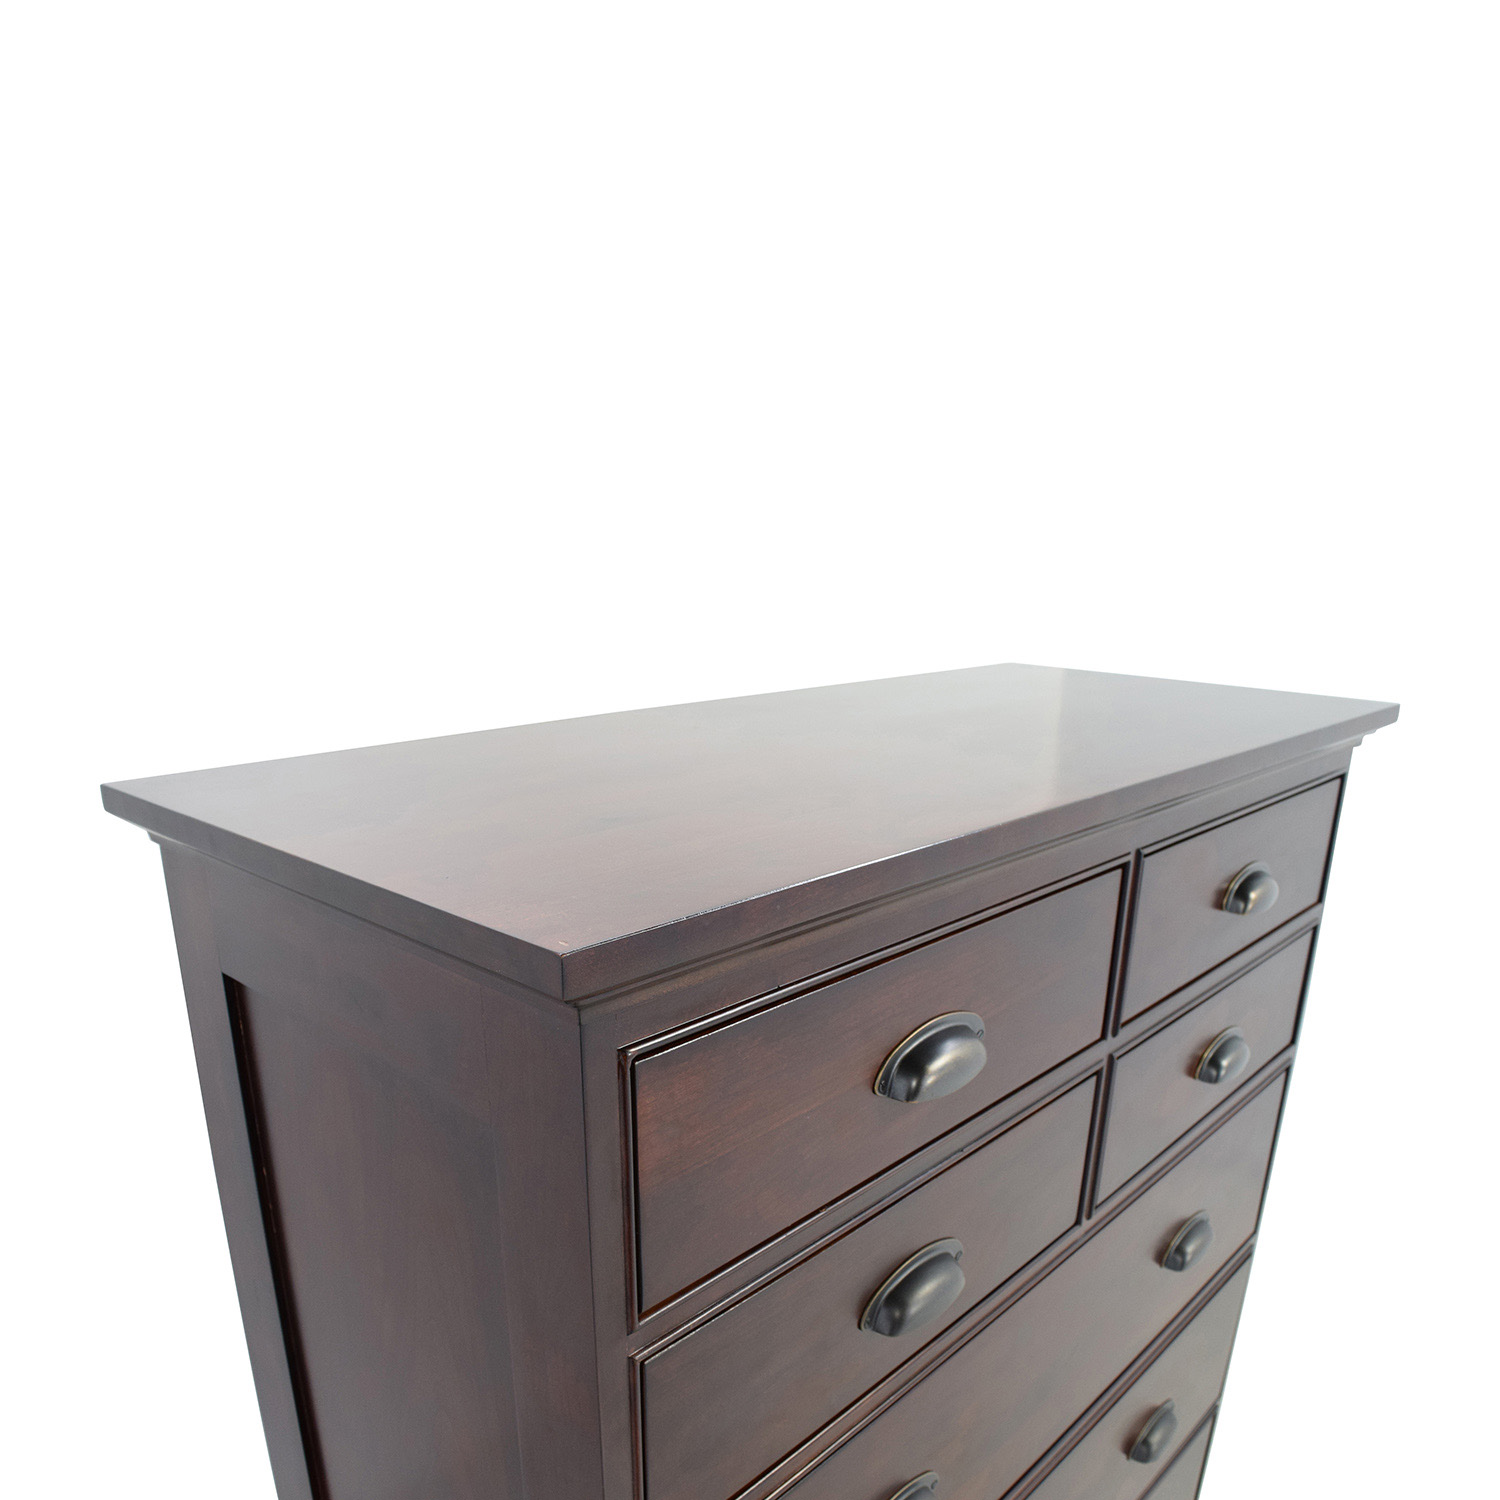 ... Buy Restoration Hardware 8 Drawer Dresser Restoration Hardware ...